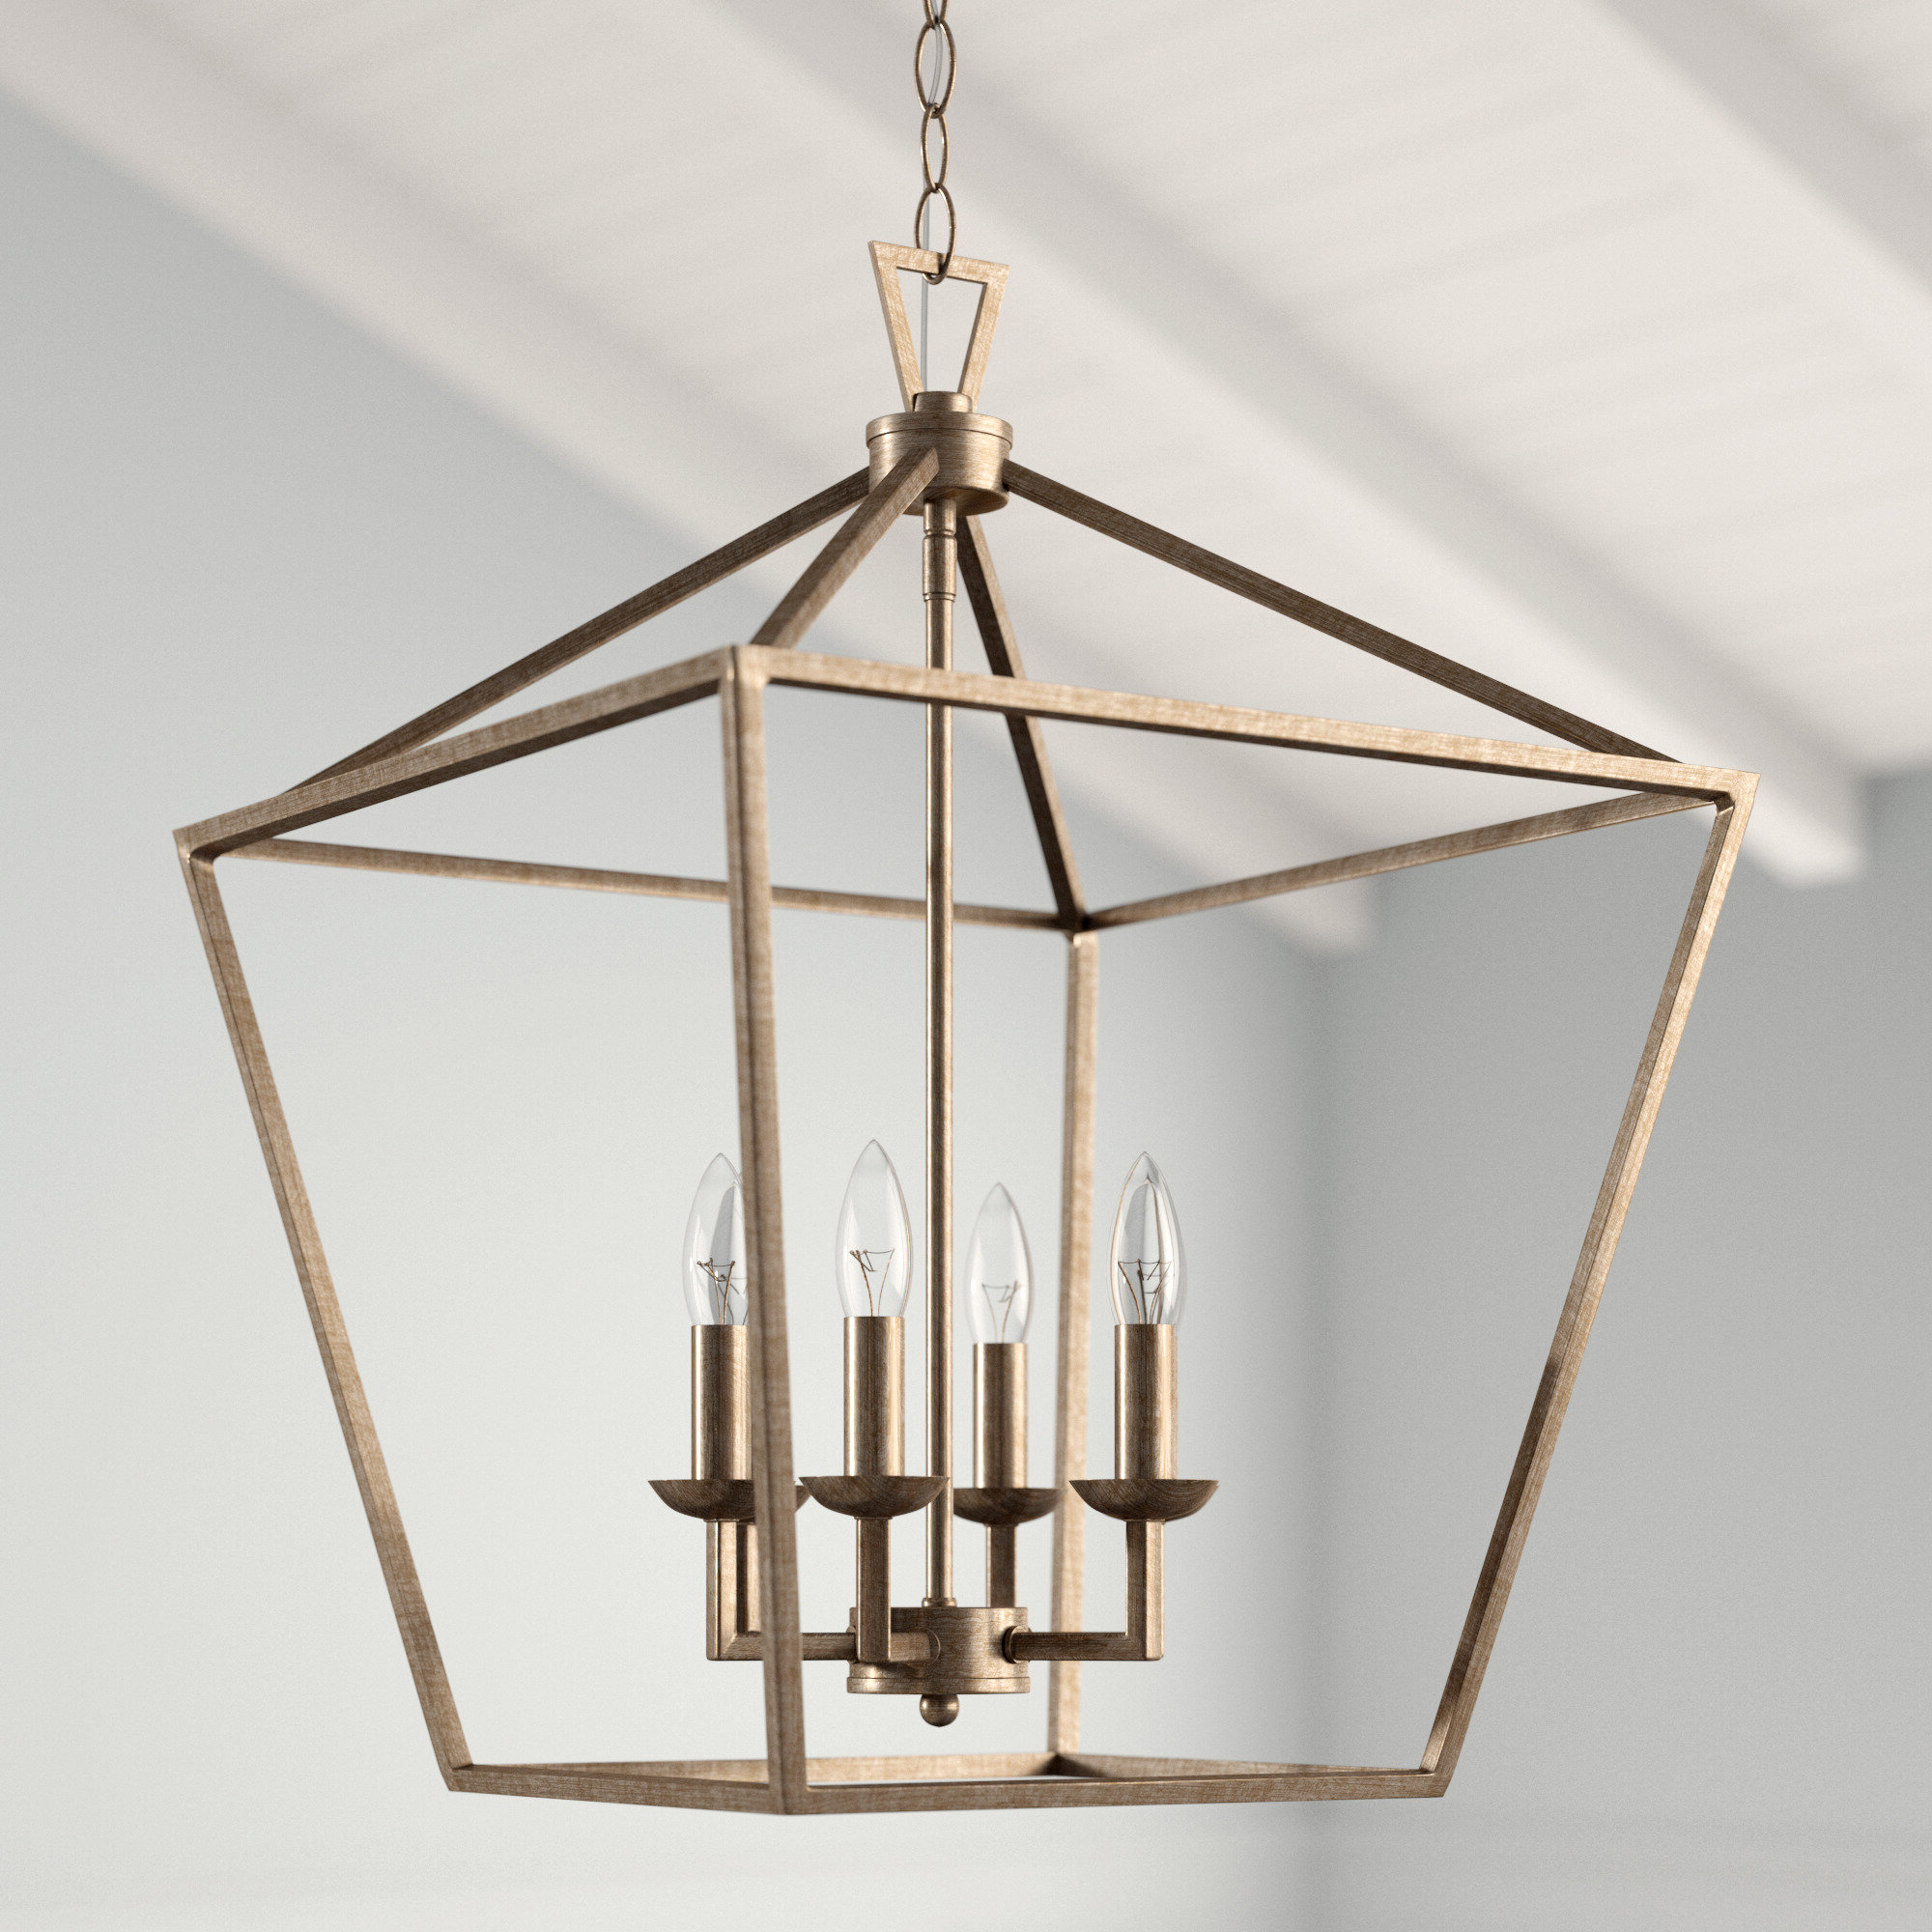 Most Recent Louanne 1 Light Lantern Geometric Pendants Regarding Carmen 6 Light Lantern Geometric Pendant (View 16 of 20)